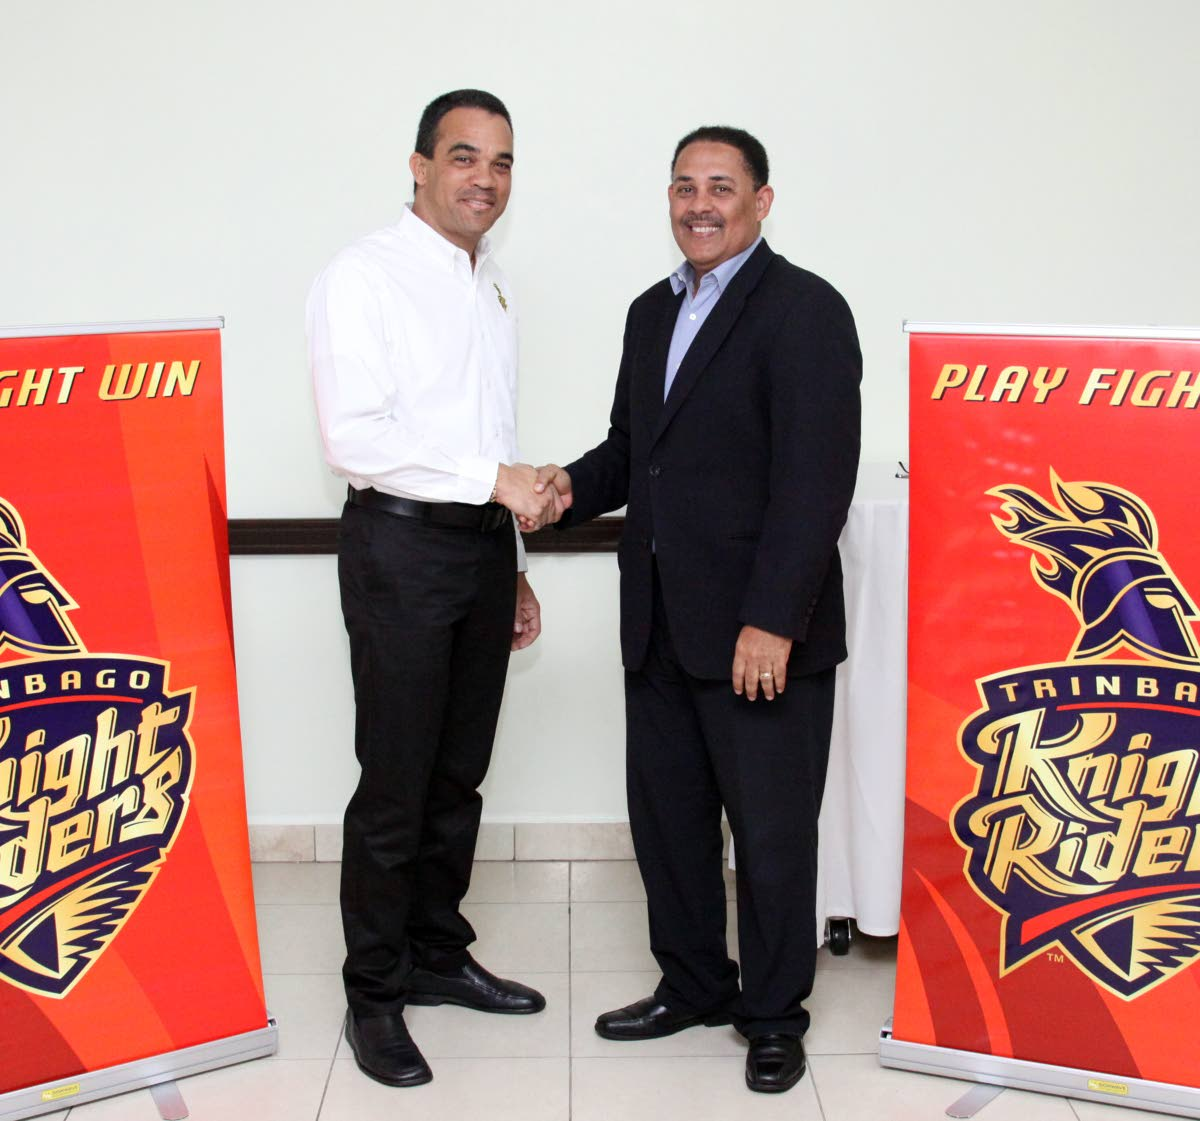 Trinidad Knight Riders Manager, Paul Skinner, left and Massy Technologies InfoCom CEO David Belgrave shake hands on a sponsorship agreement at the President's Box, Queen's Park Oval, St Clair in July. Photo by Angelo Marcelle